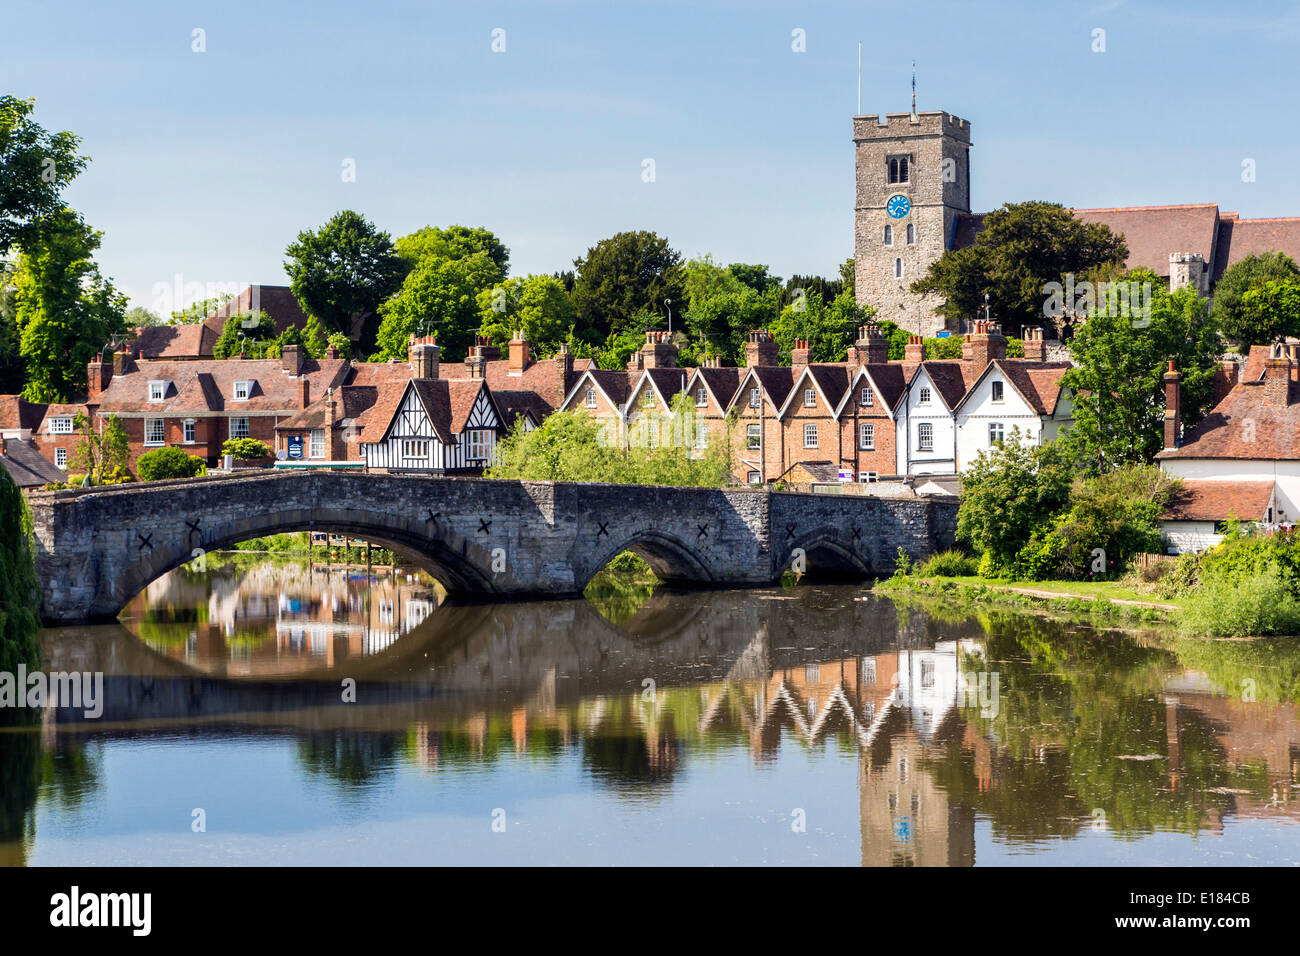 Bridge over the River Medway at Aylesford near Maidstone Kent - Stock Image